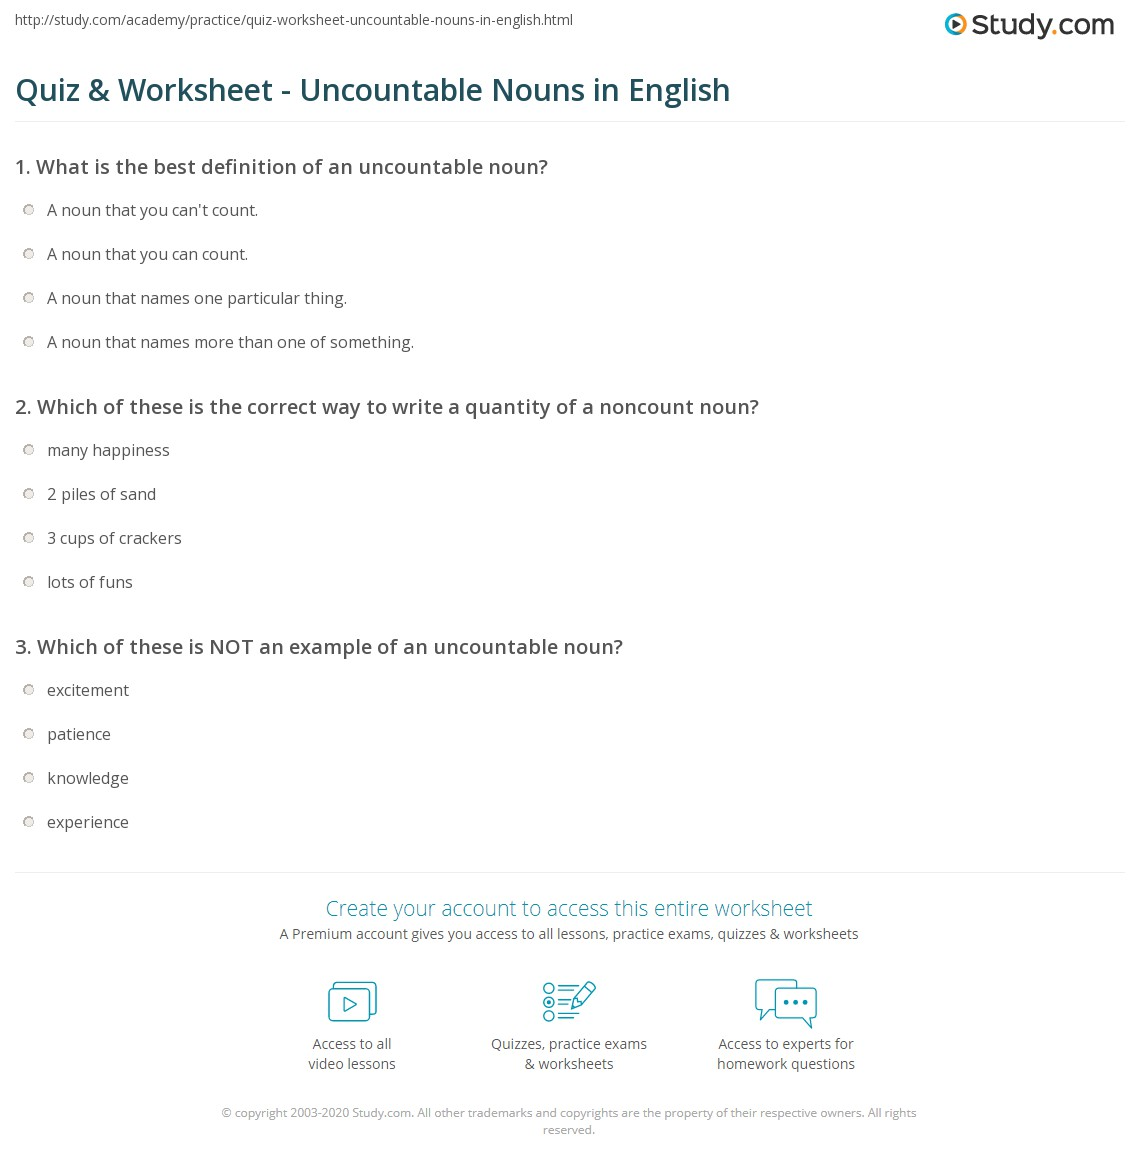 worksheet Count And Noncount Nouns Worksheet quiz worksheet uncountable nouns in english study com which of these is the correct way to write a quantity noncount noun